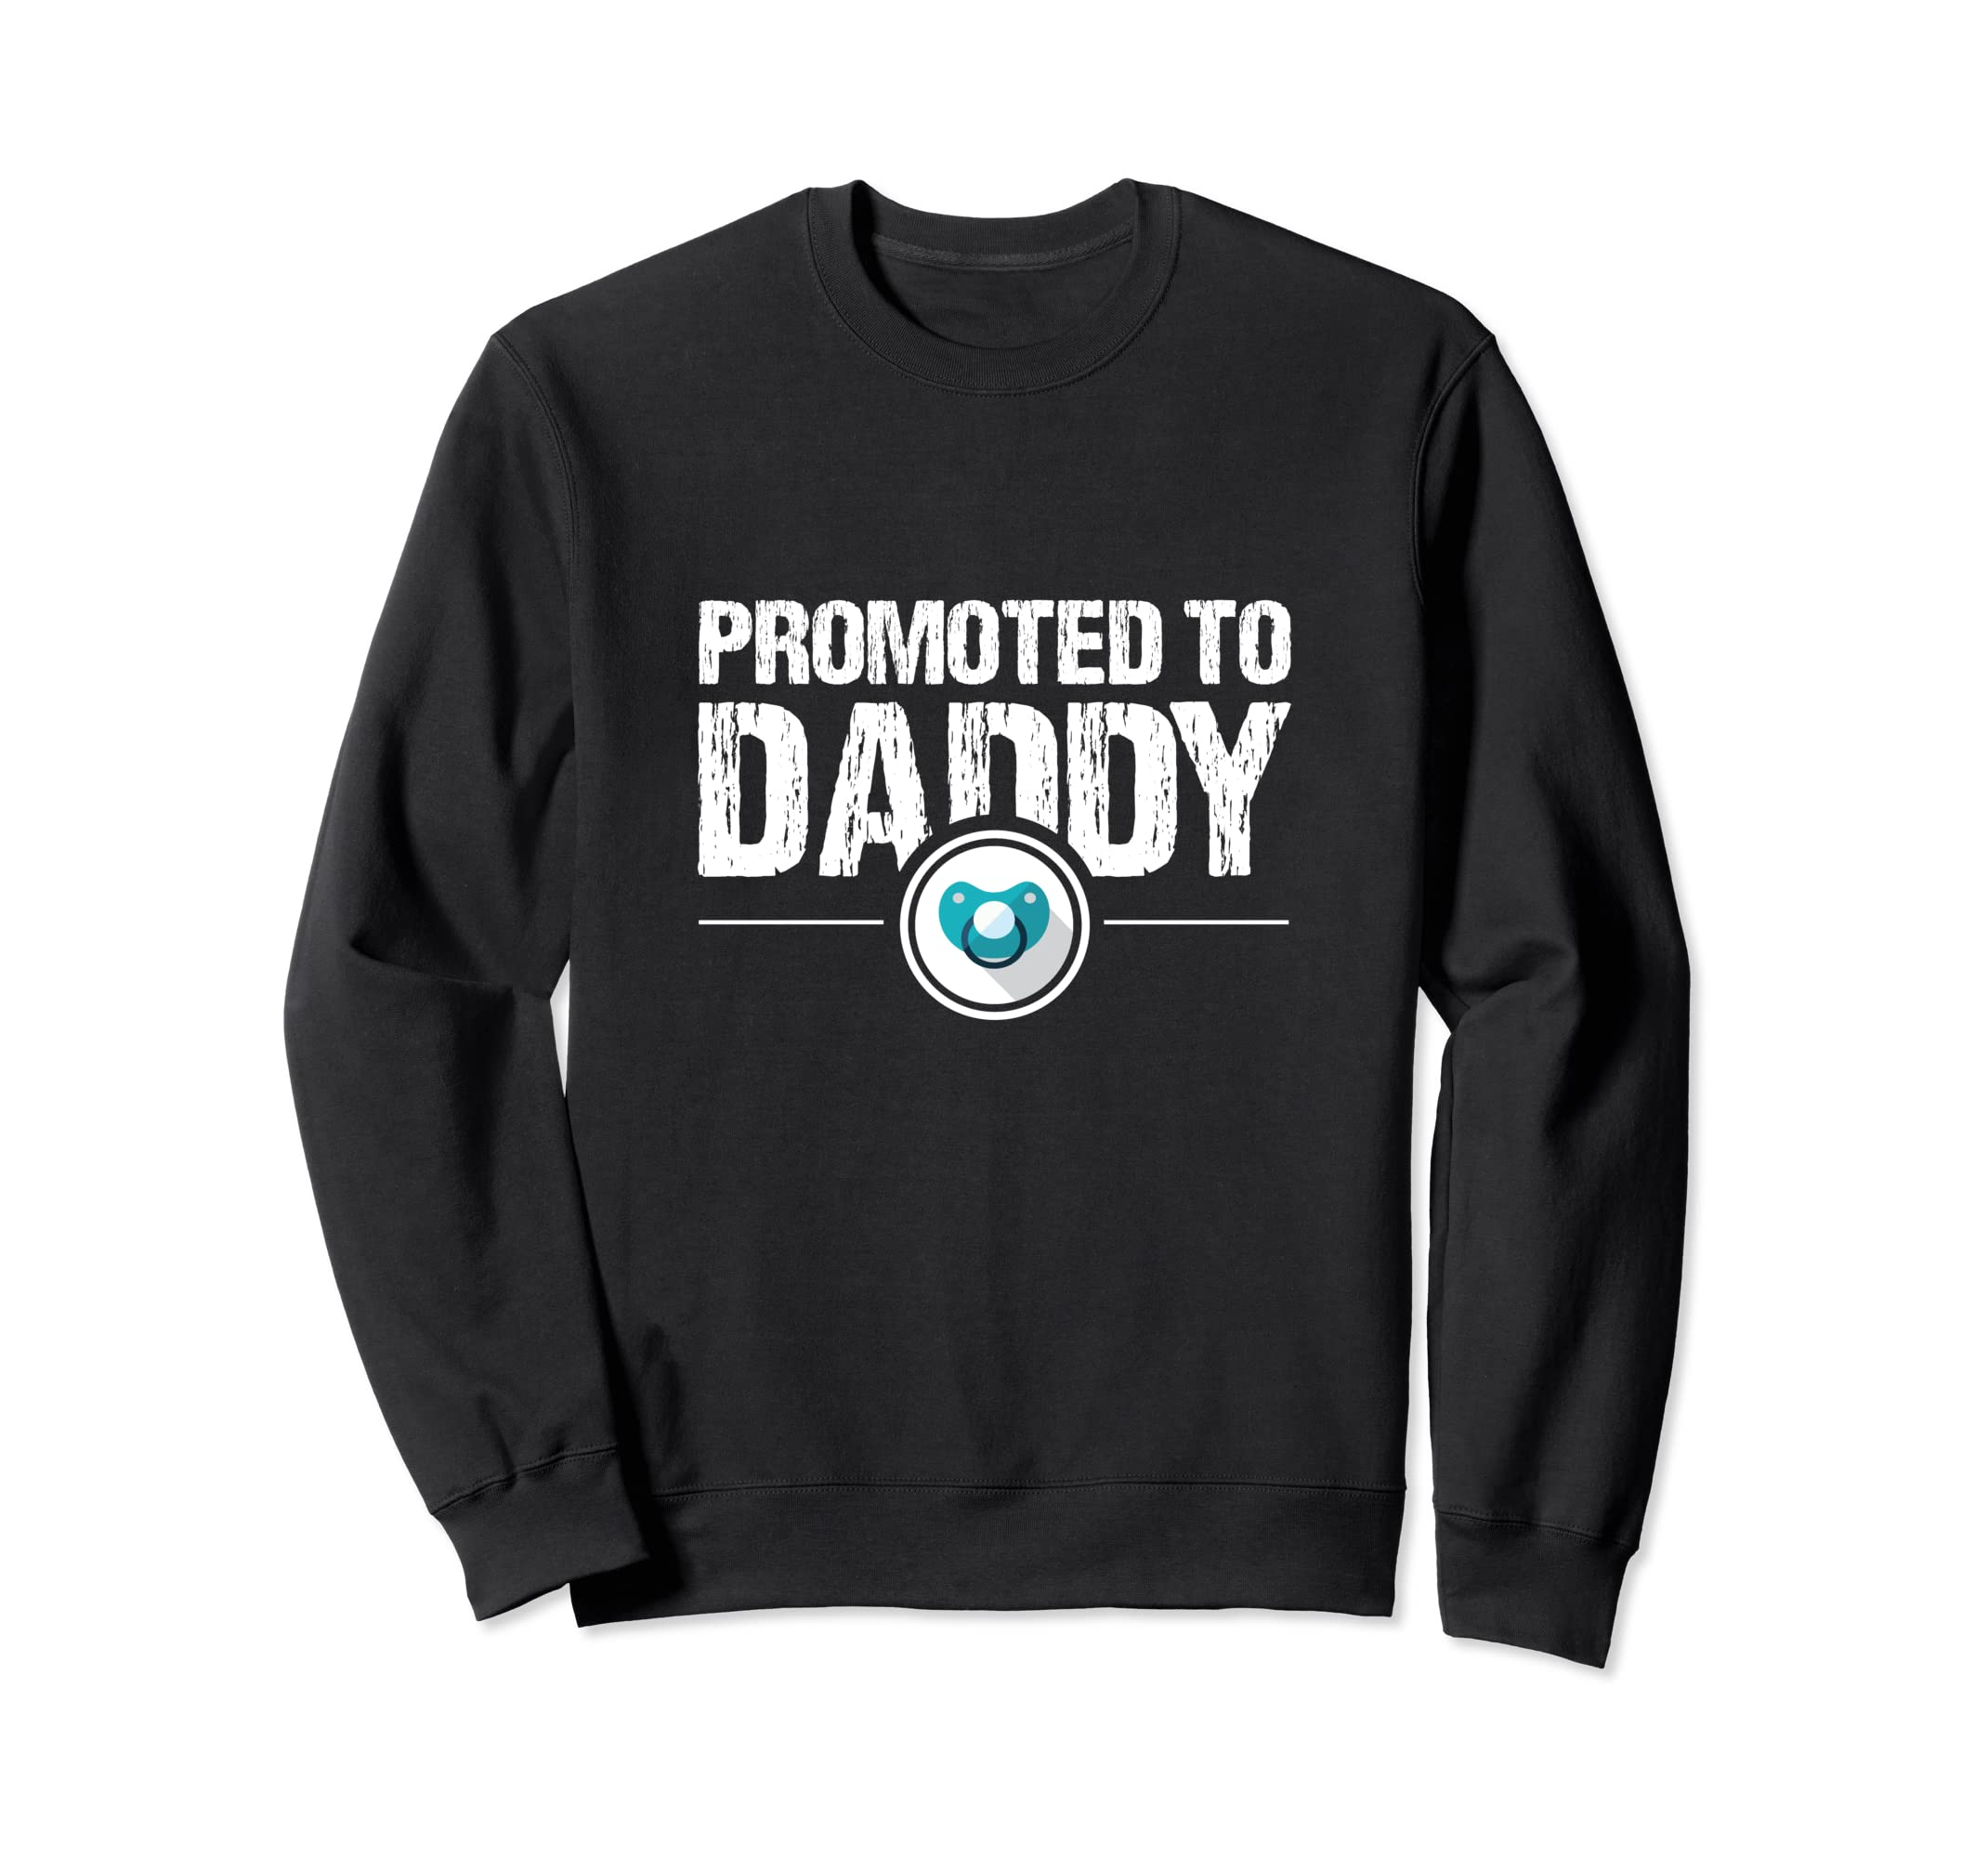 2df22a72 Amazon.com: Promoted To Daddy Funny Pacifier New Father Gift T-Shirt  Sweatshirt: Clothing